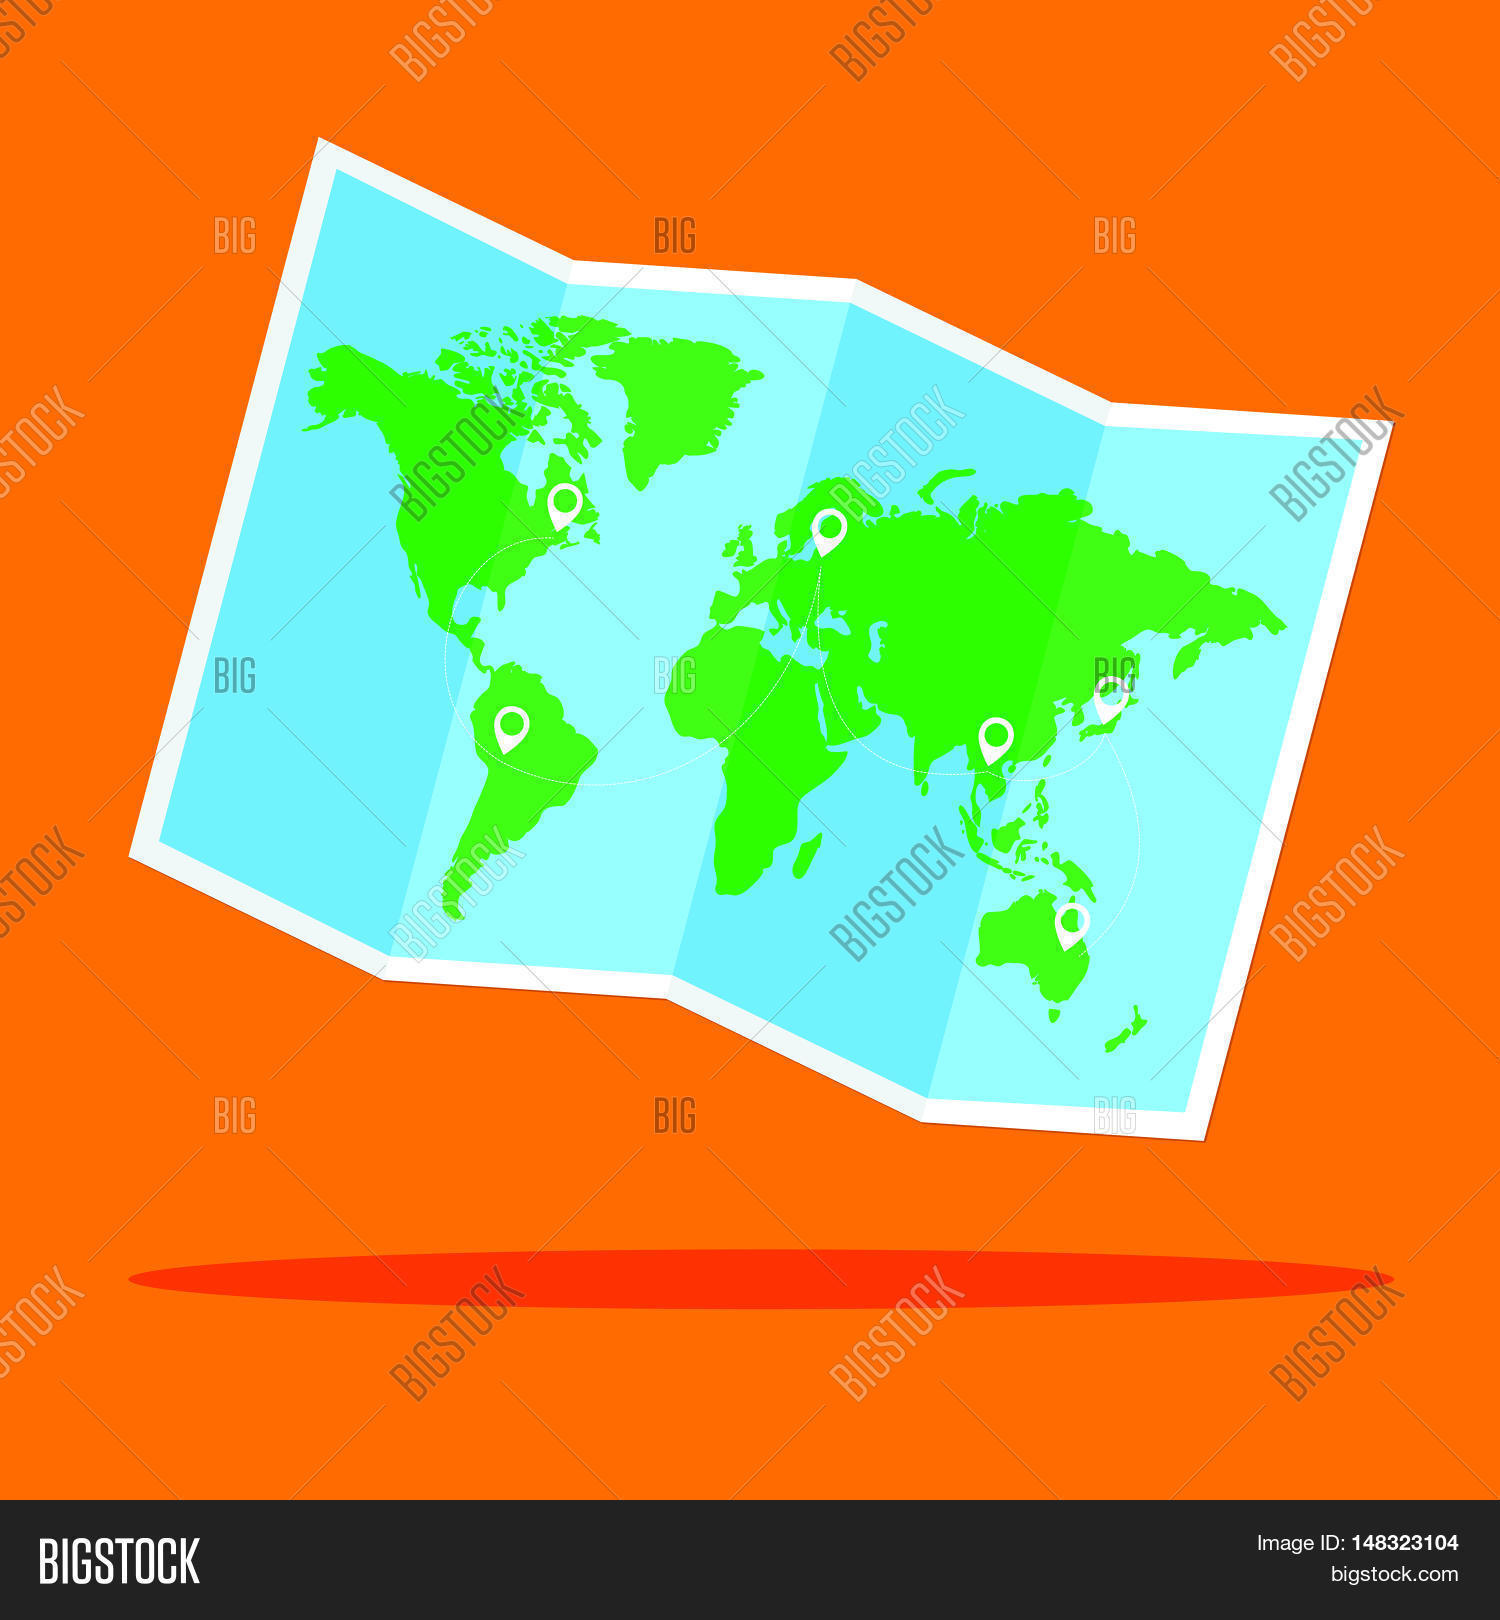 World map vector vector photo free trial bigstock world map vector with location point flat design for business financial marketing banking advertisement commercial gumiabroncs Choice Image